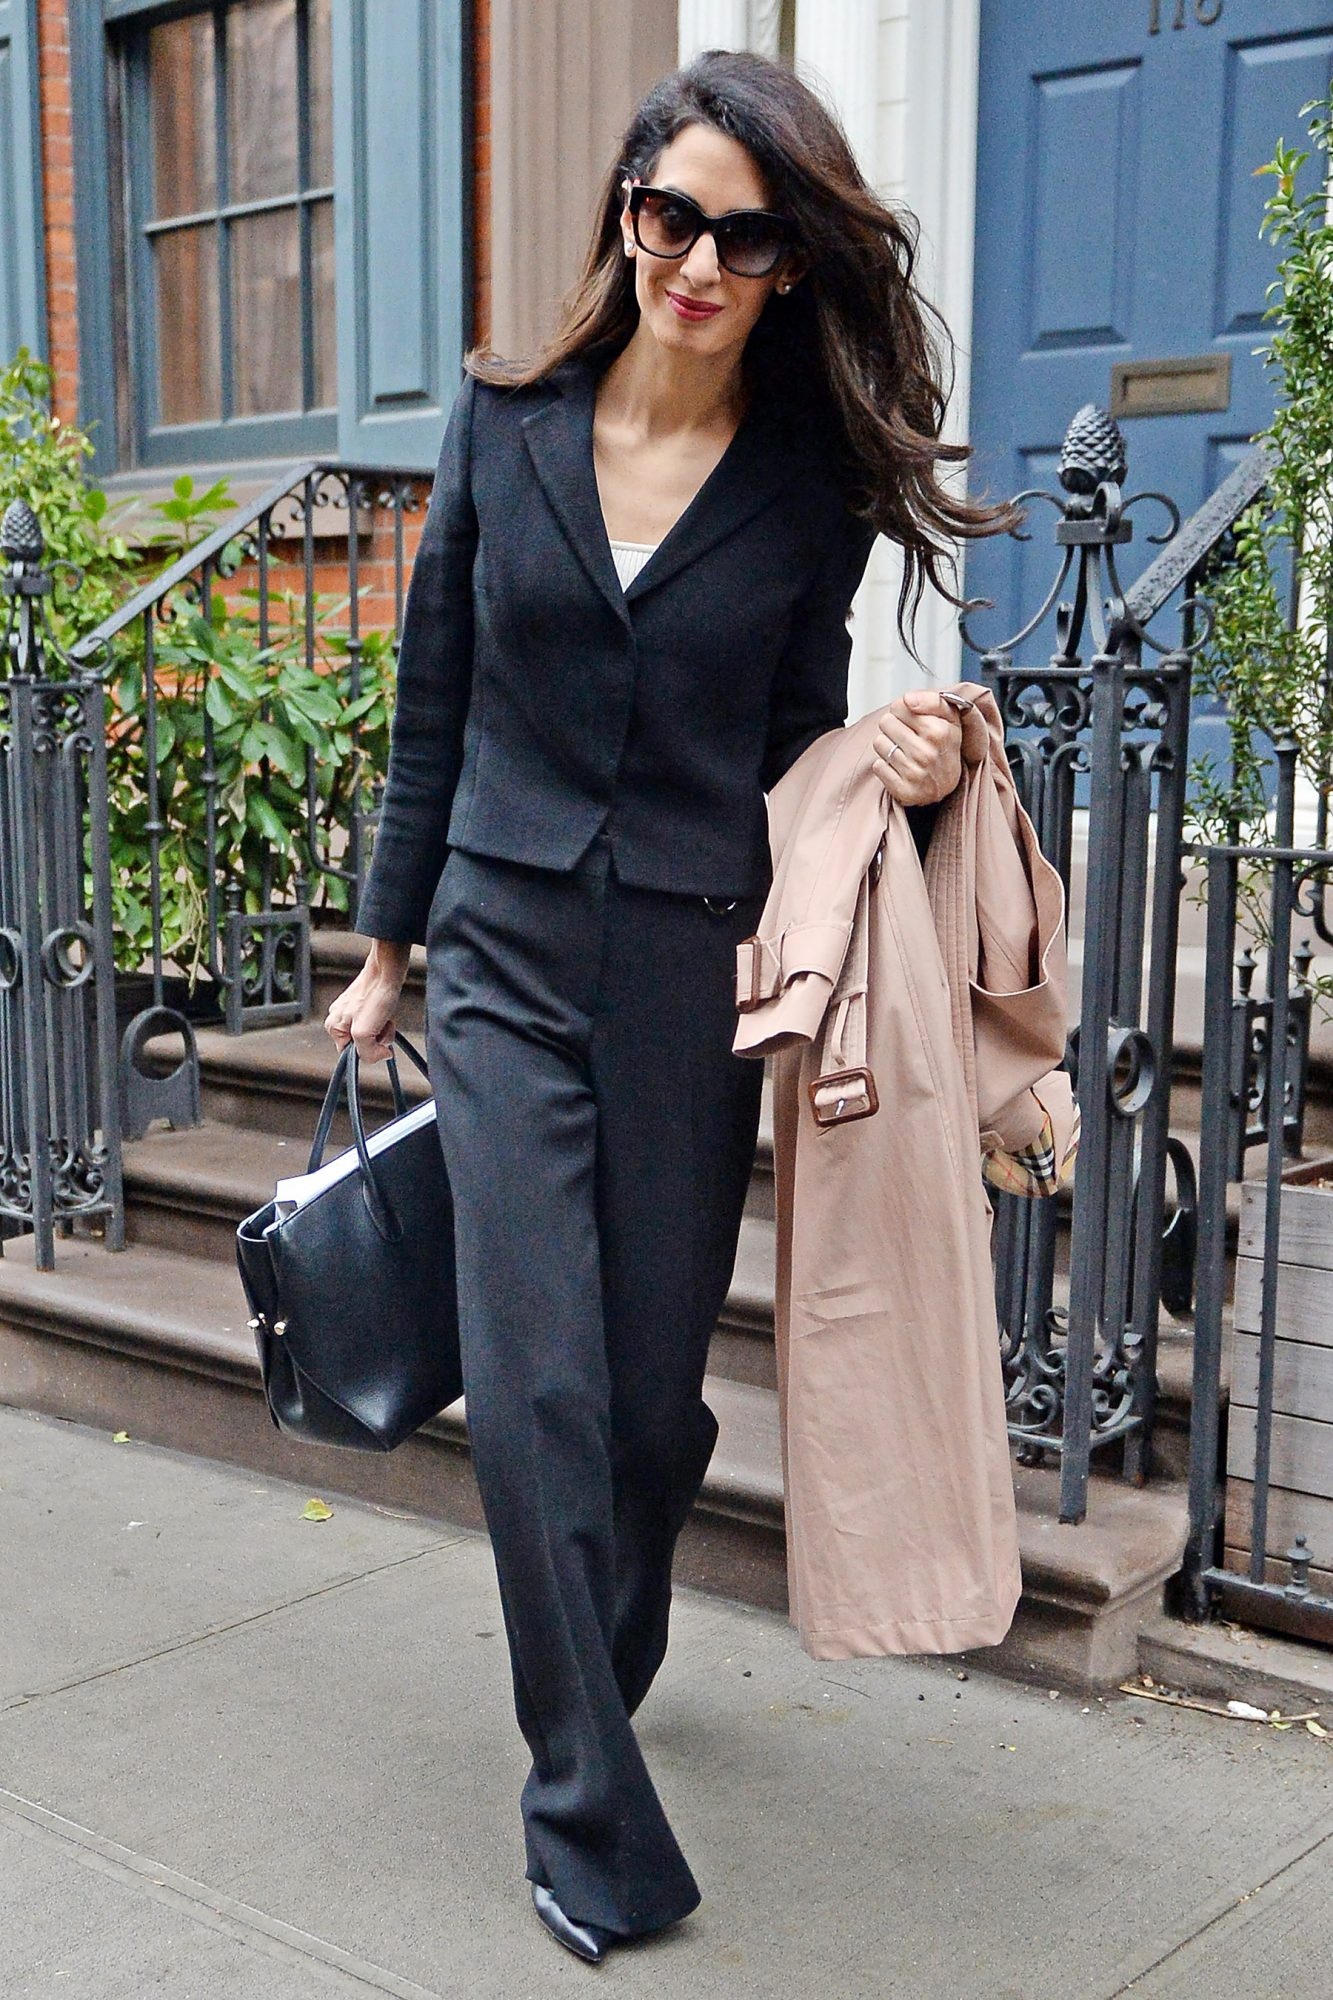 Amal Clooney photographed leaving her New York city apartment this morning on her way to Columbia University